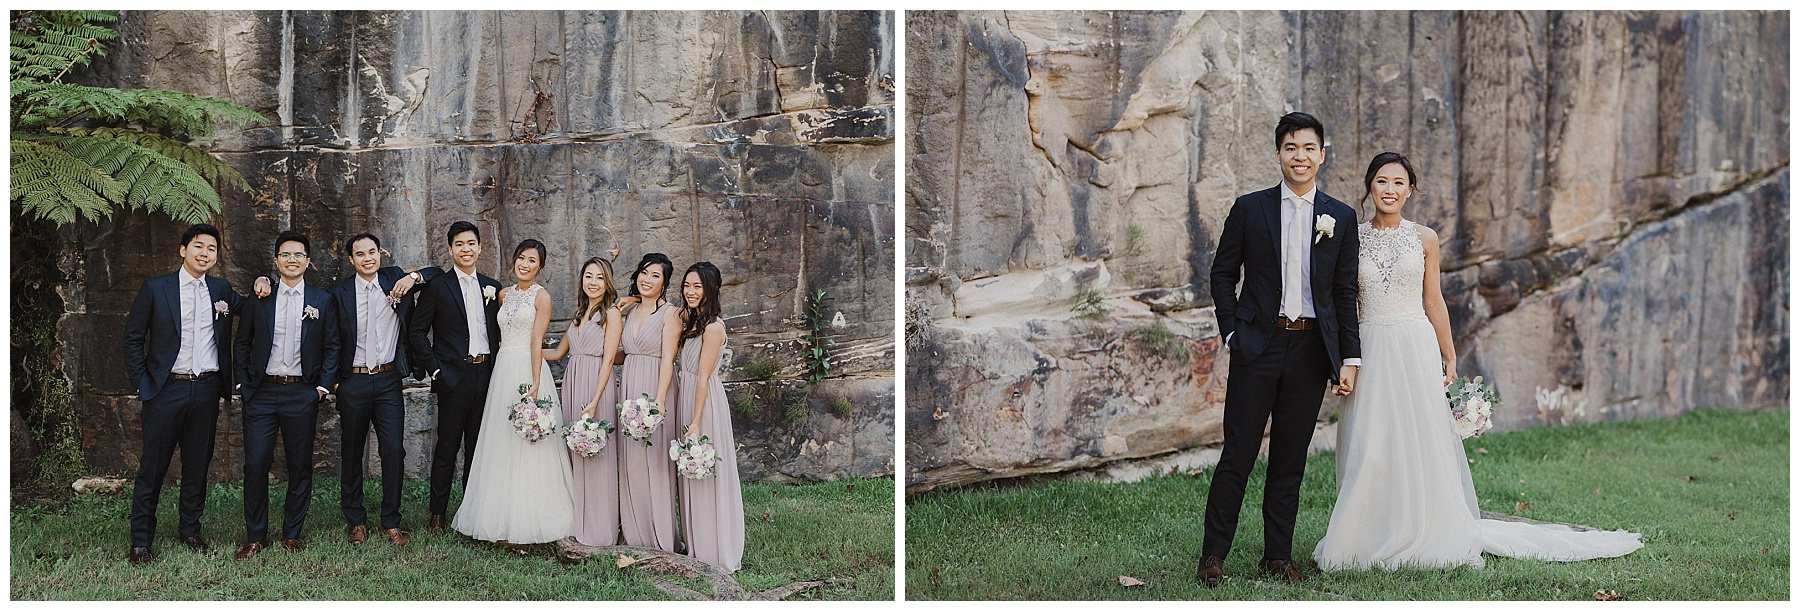 Sydney Bride and Groom and their wedding party